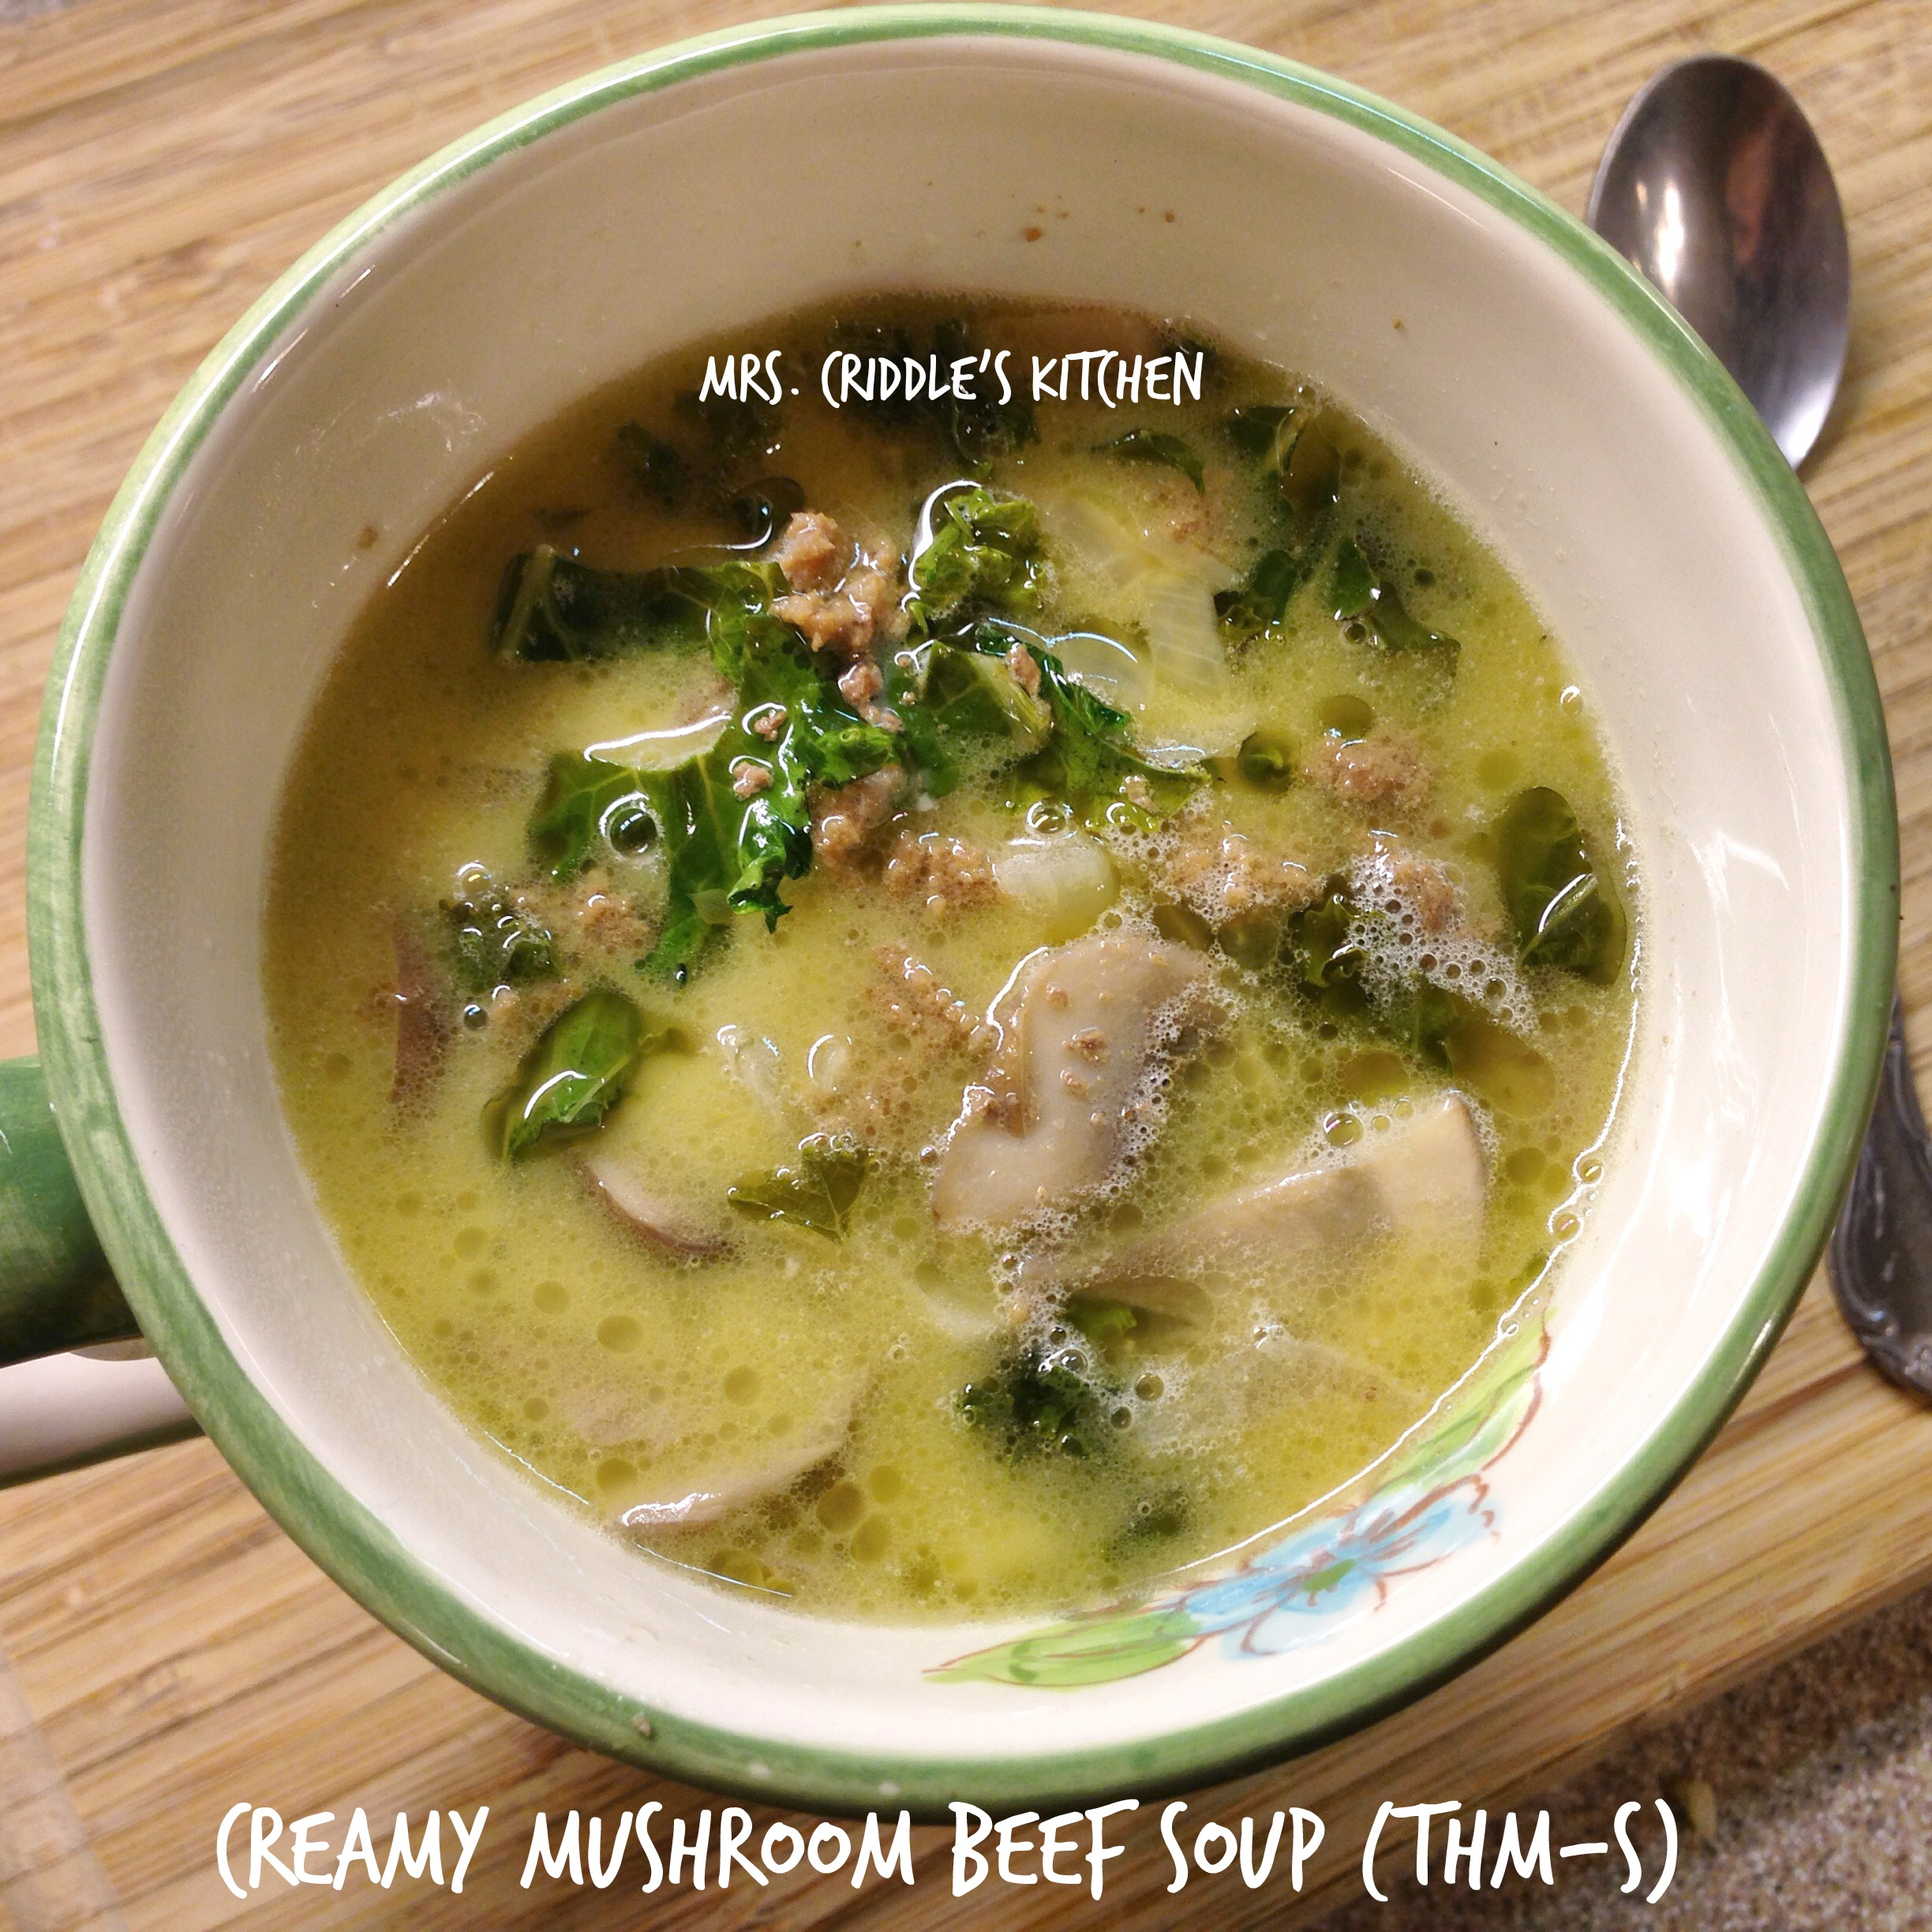 Creamy Mushroom Beef Soup - Mrs. Criddles Kitchen